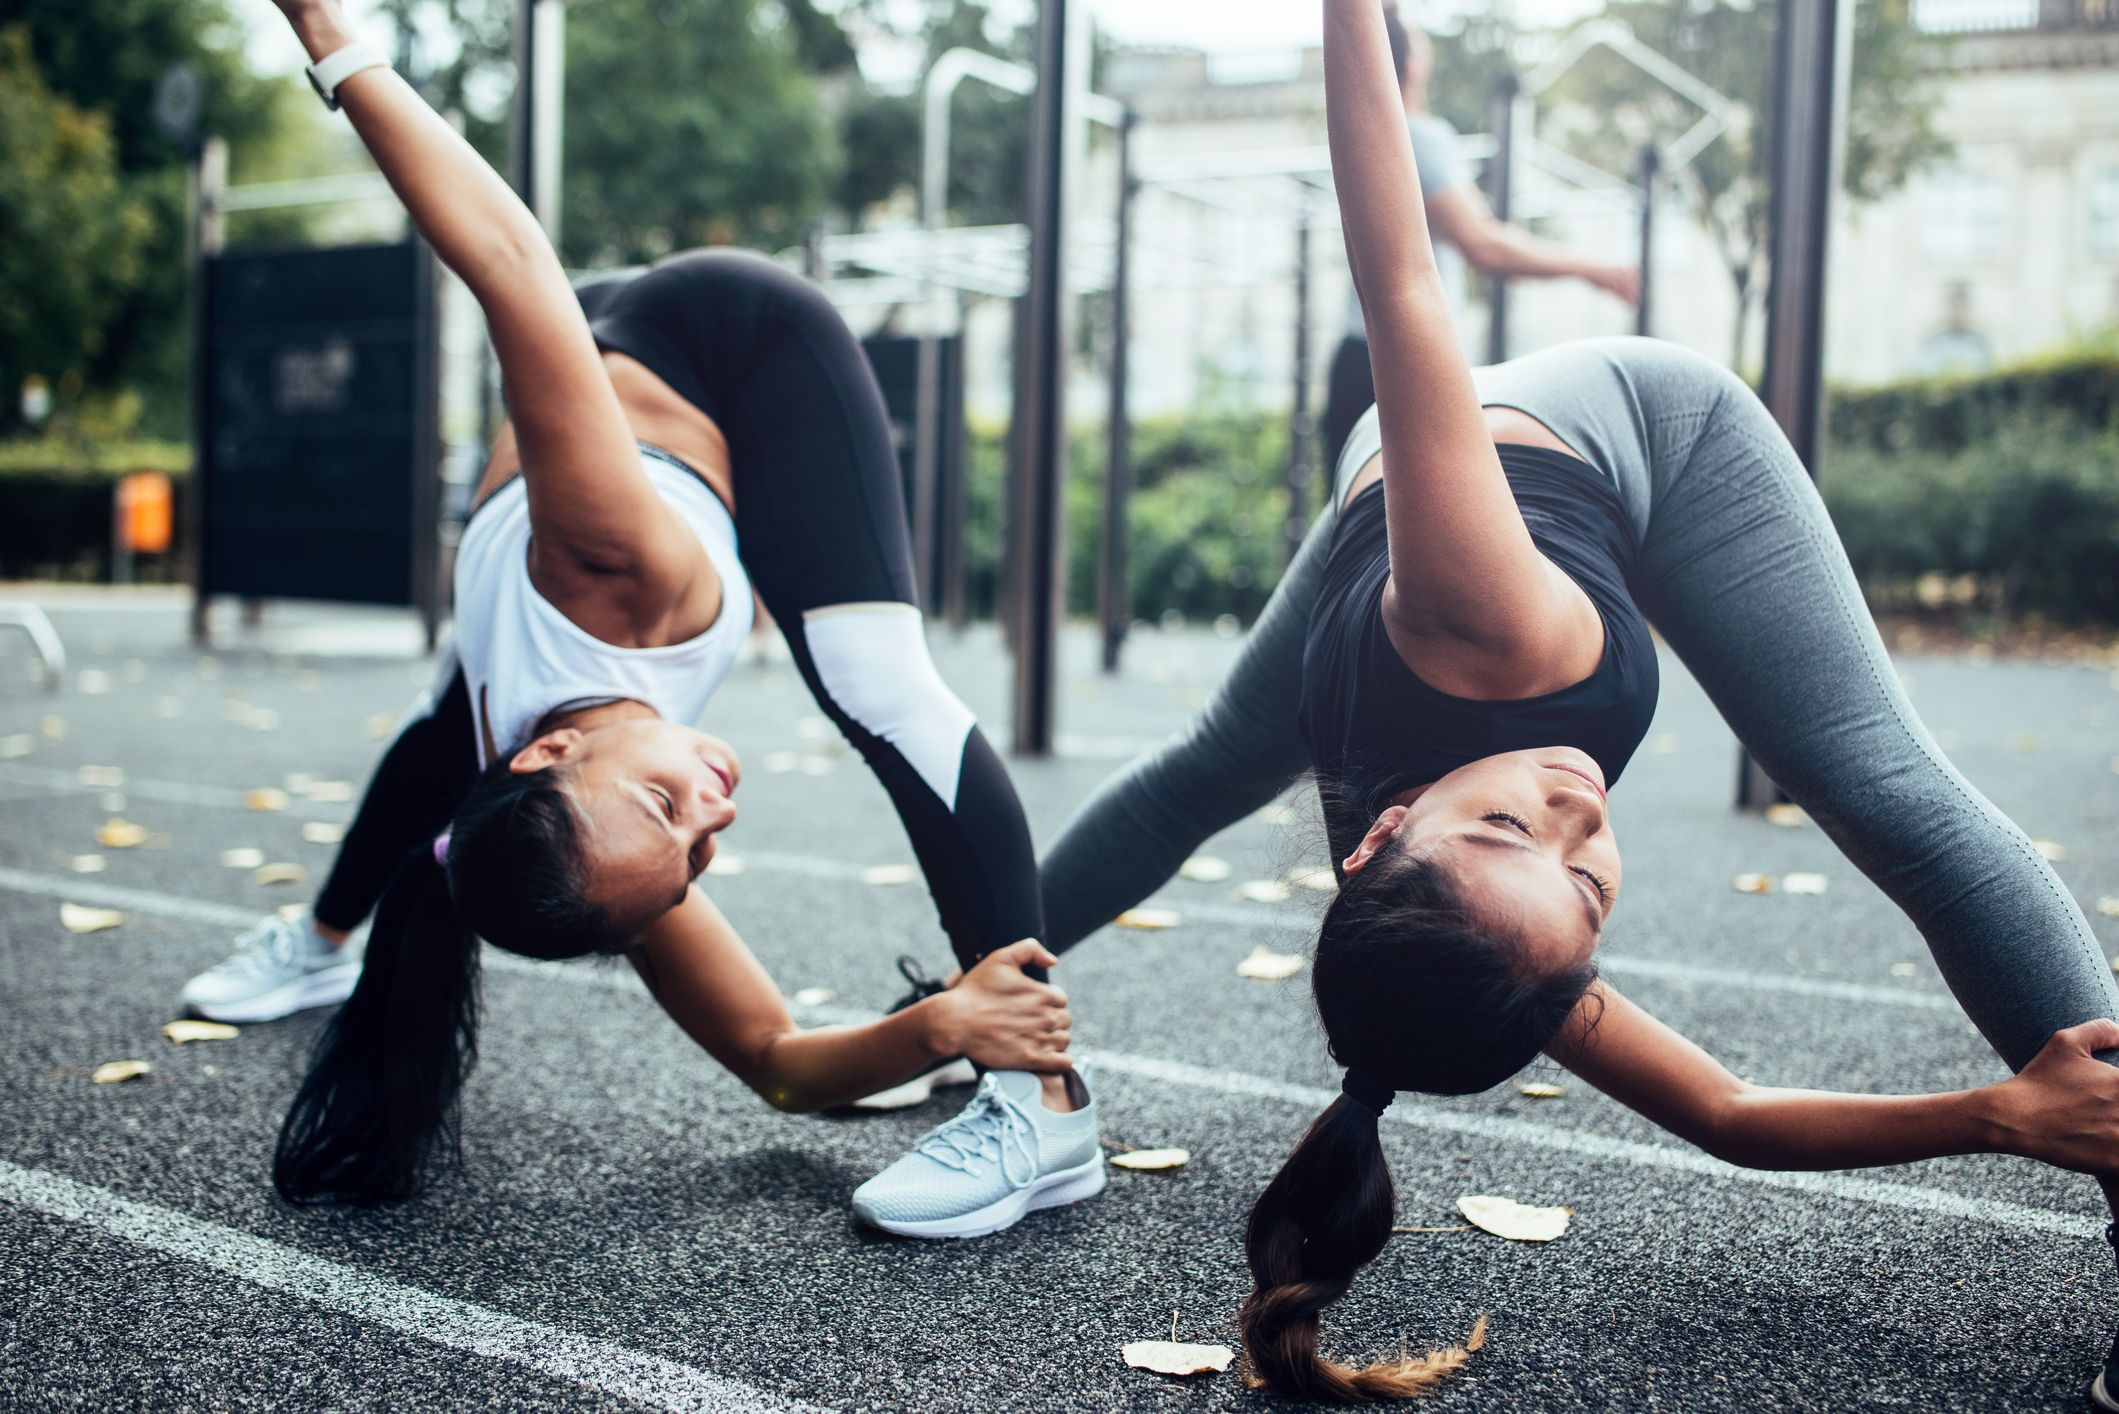 4 Easy Dynamic Stretches to Do Before Every Workout